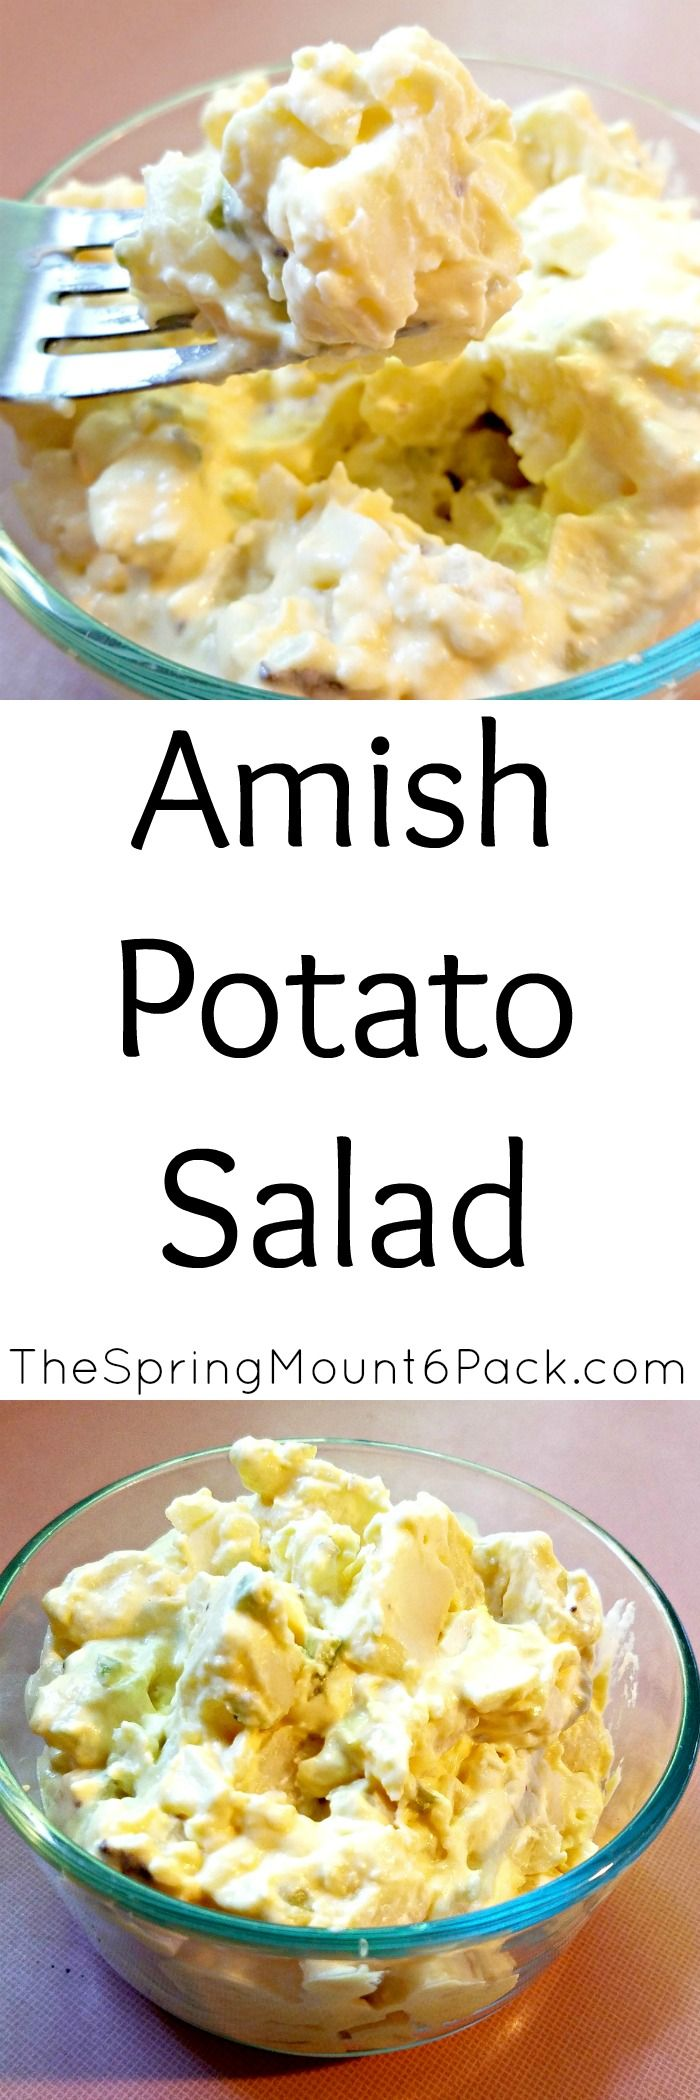 Amish Potato Salad is perfect for a get together and is a great recipe for a picnic. This potato salad recipe will be a hit.